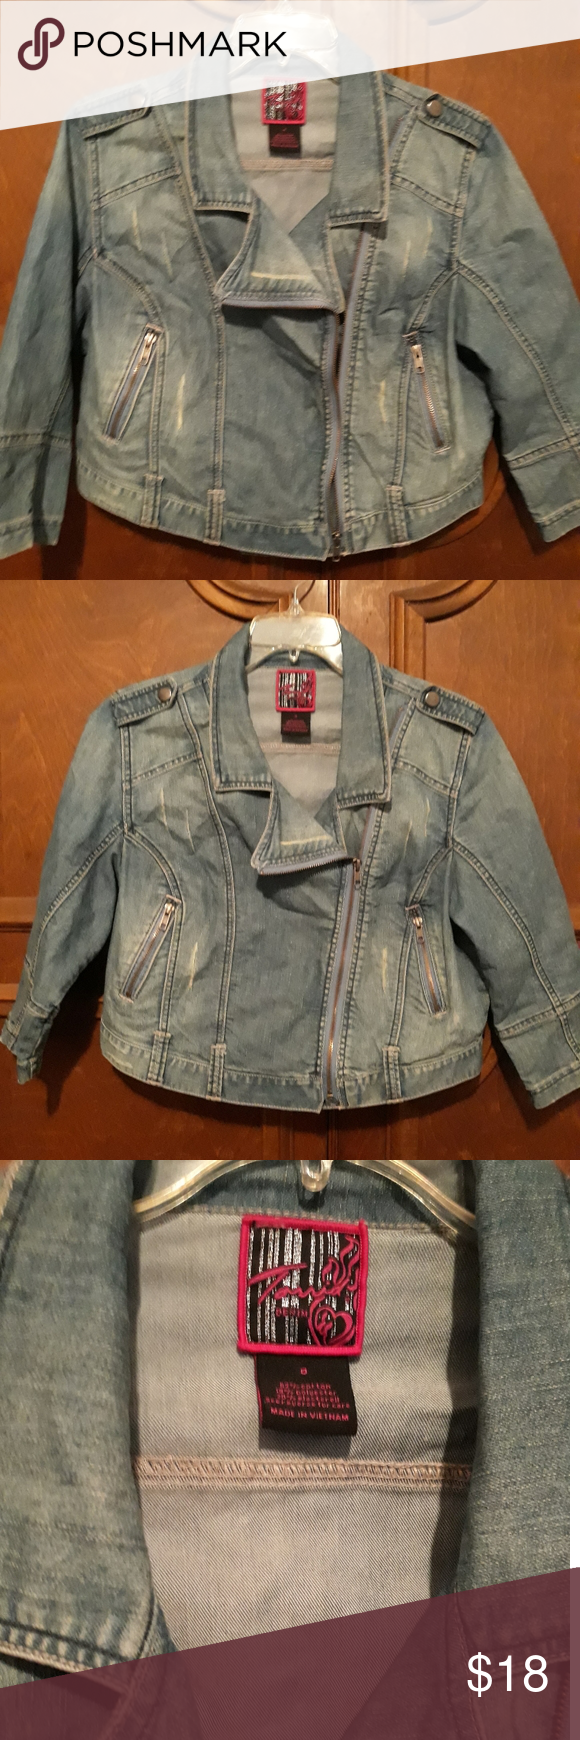 A Torrid Denim Jacket Fun And Cropped Style Denim Jacket Jackets Cropped Style [ 1740 x 580 Pixel ]